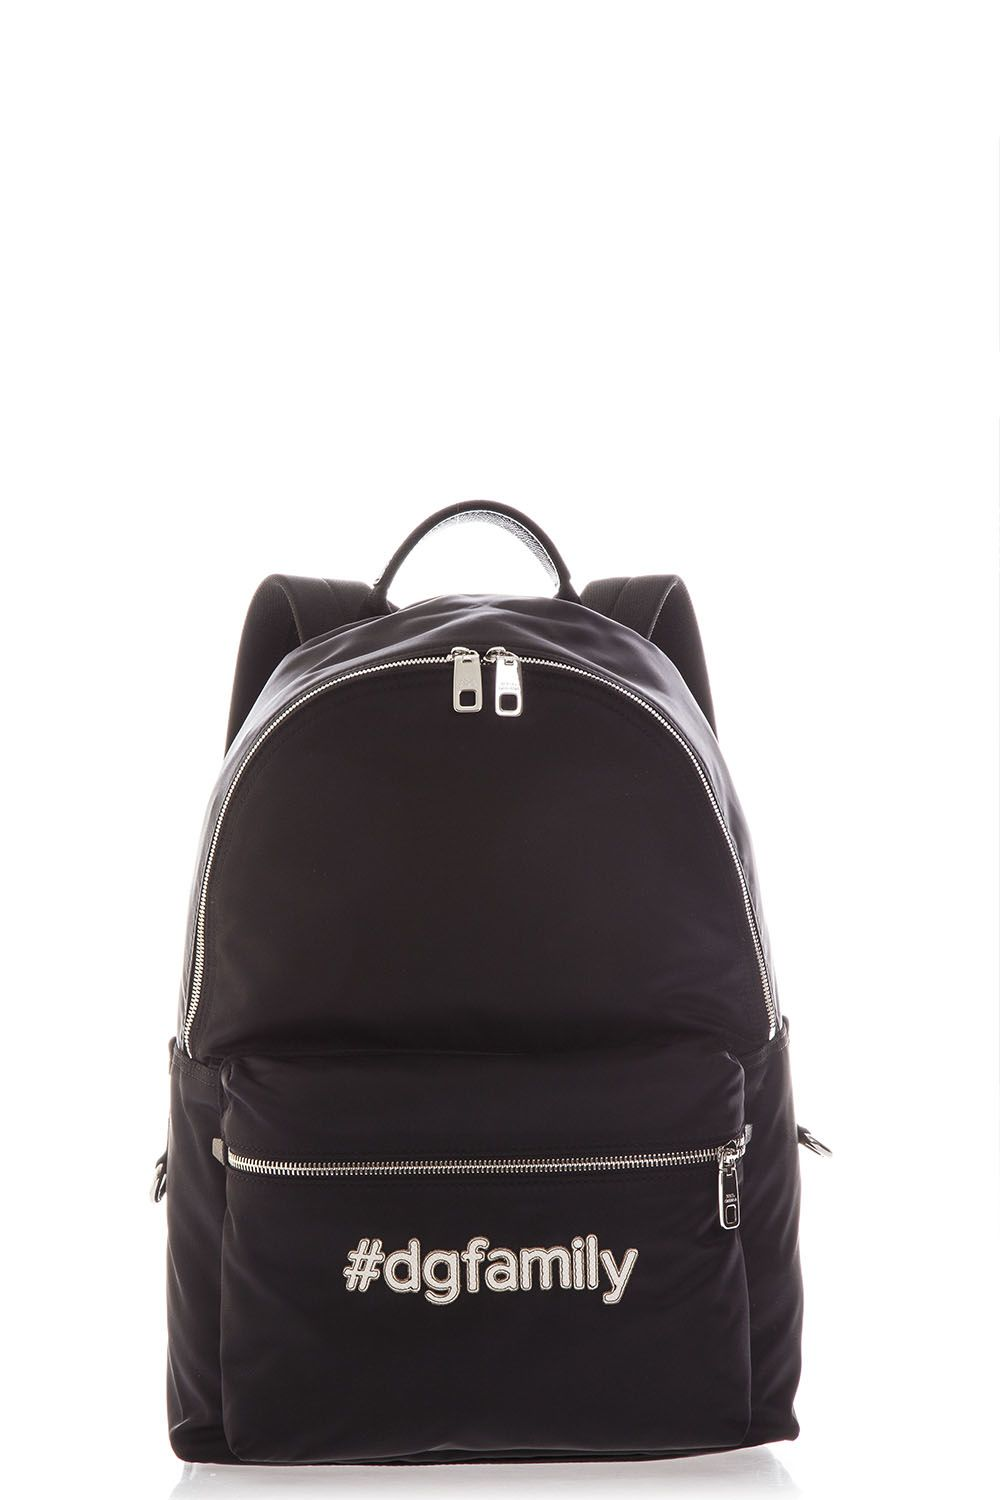 Dolce & Gabbana Dg Family Backpack